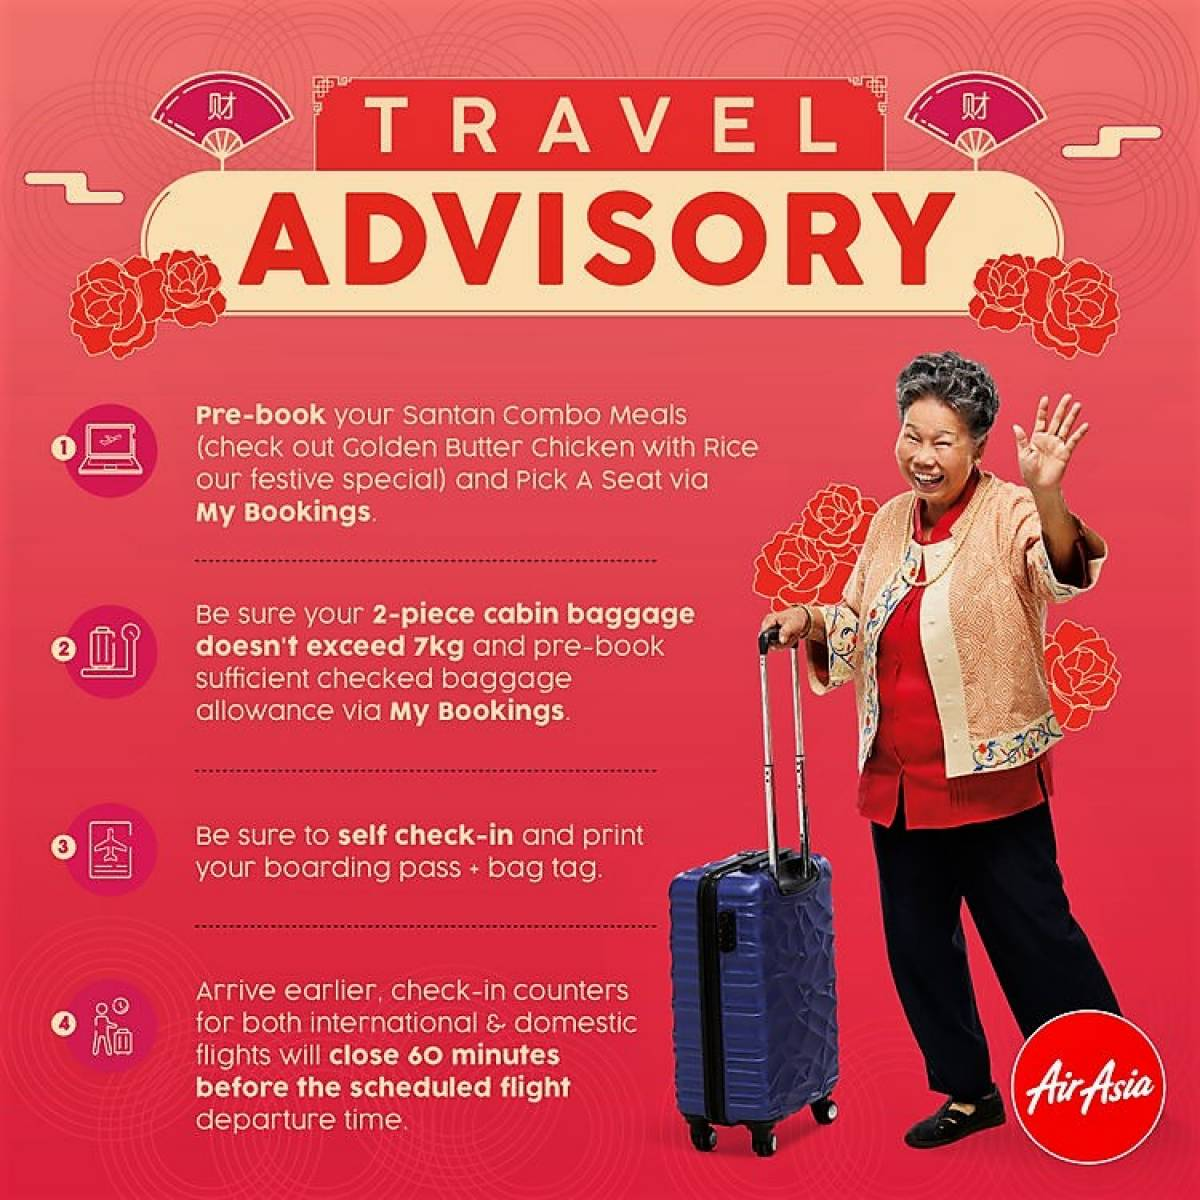 AirAsia Travel Tips for Chinese New Year Holidays - Get There Early!